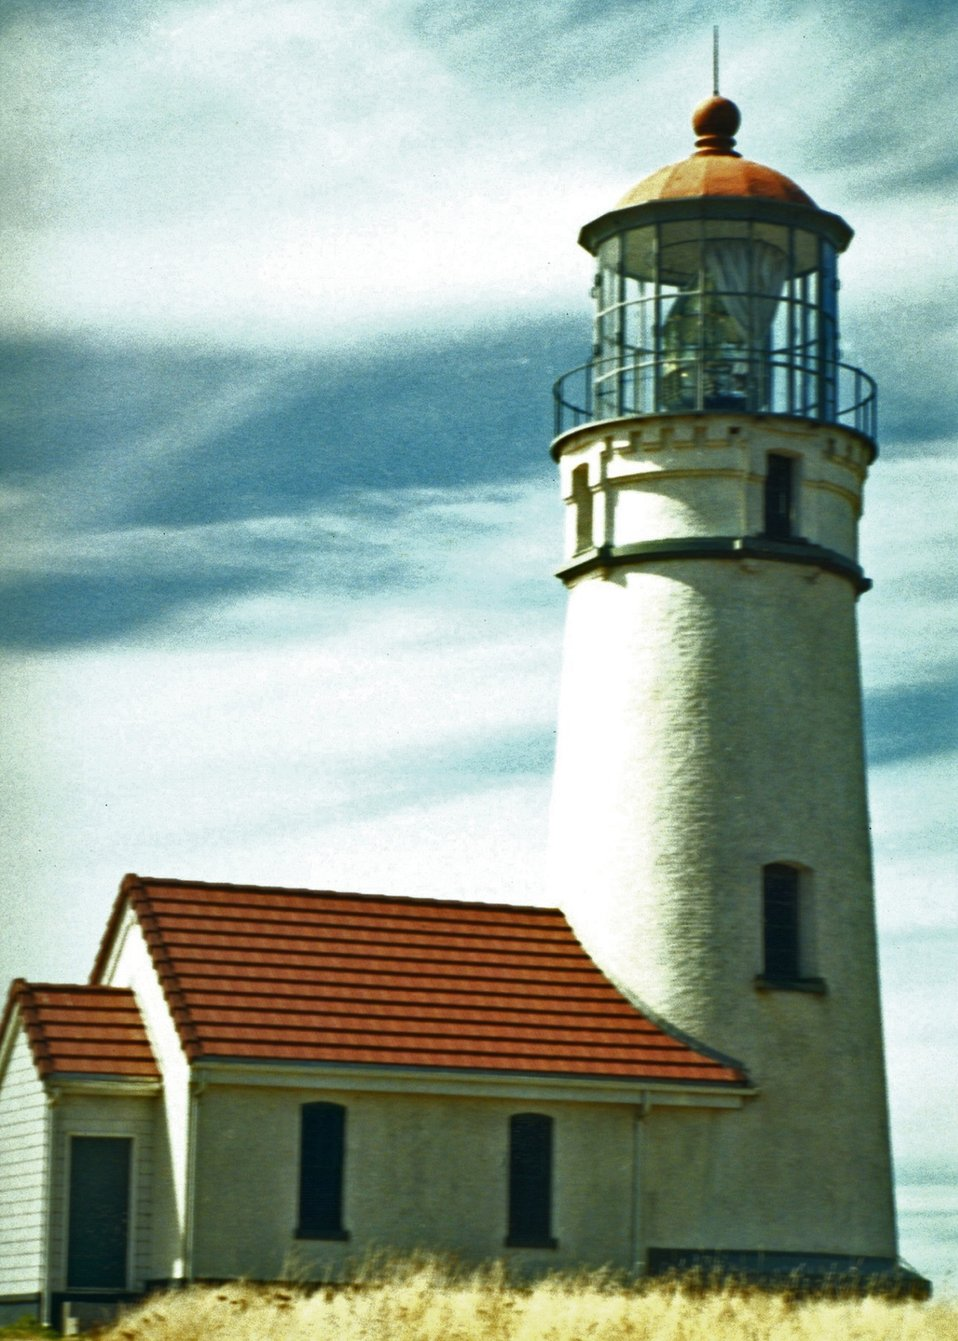 Cape Blanco Lighthouse during daytime.